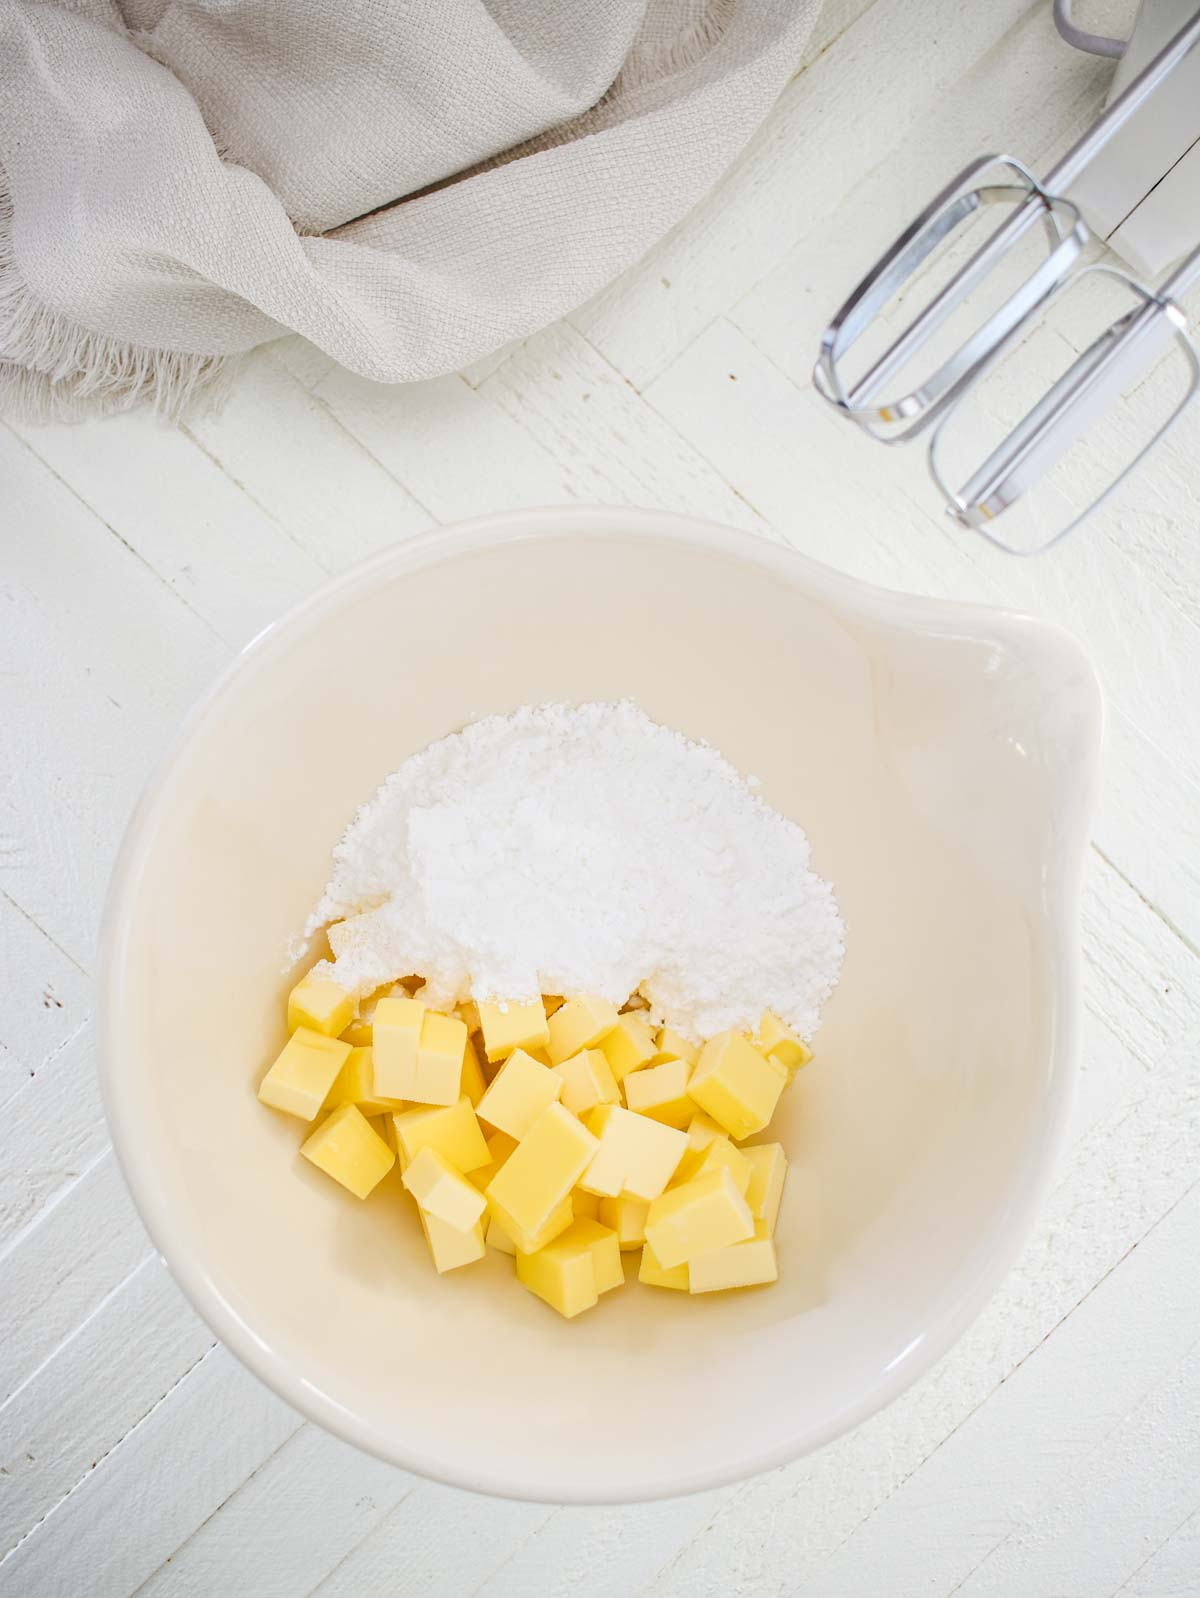 Butter and powdered sugar in a bowl